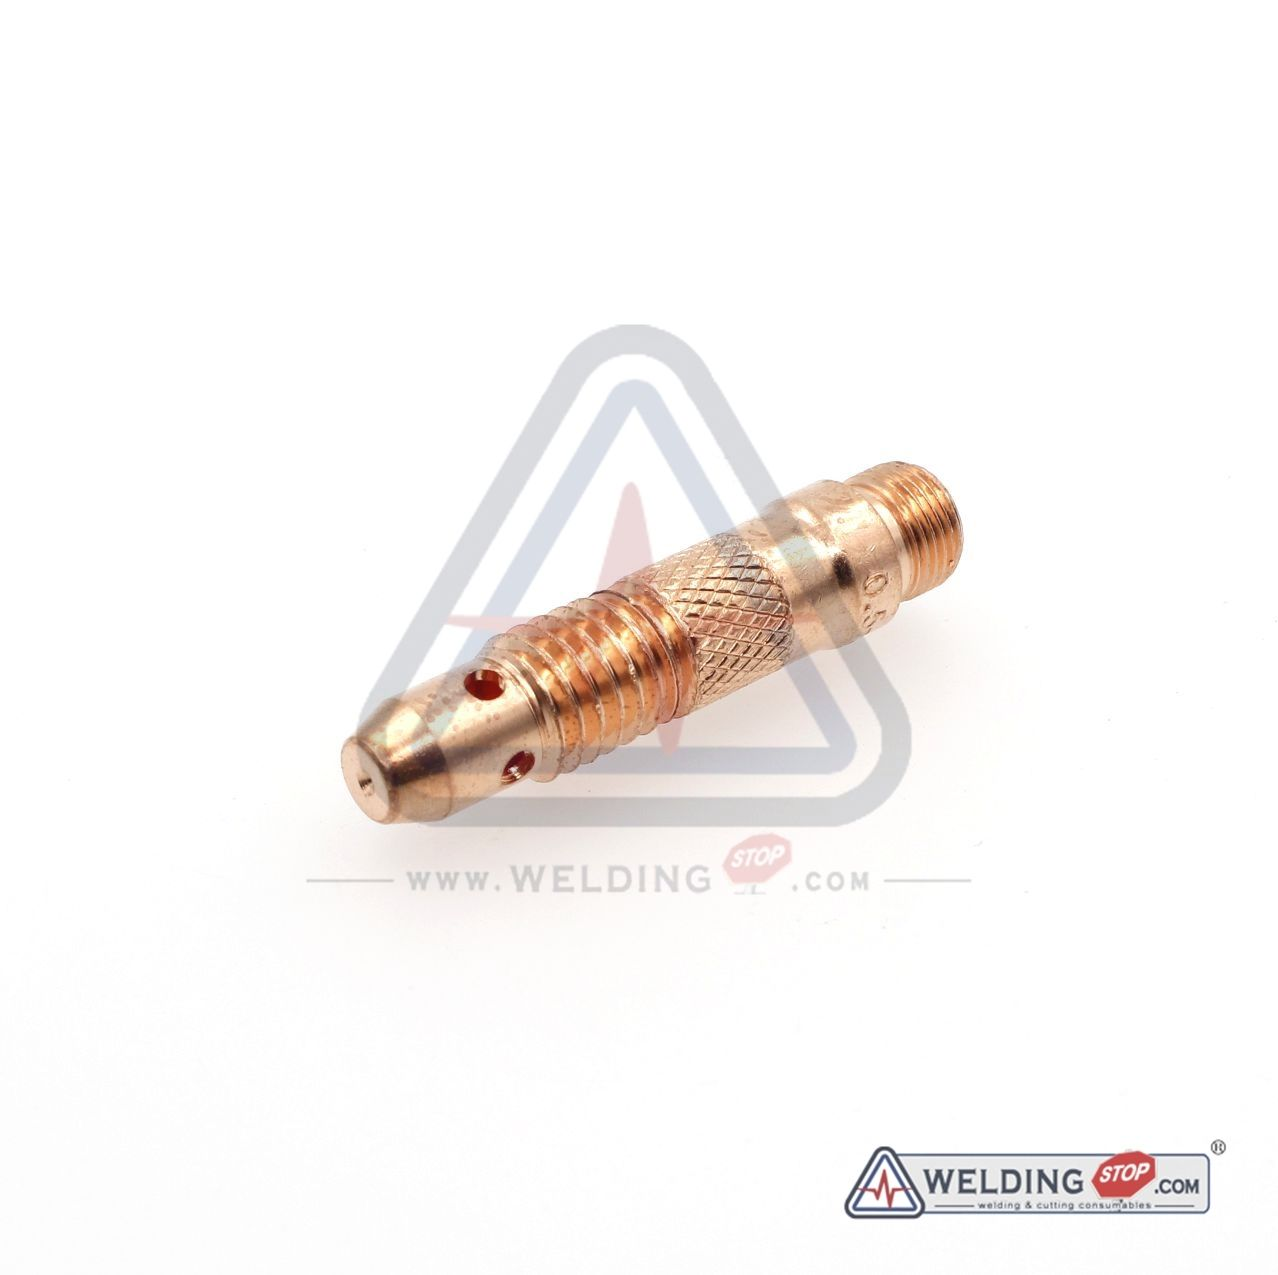 10N29 Collet Body 0.020'' 0.5mm Fit TIG Weld Torch WP-17 WP-18 WP-26 PK/5